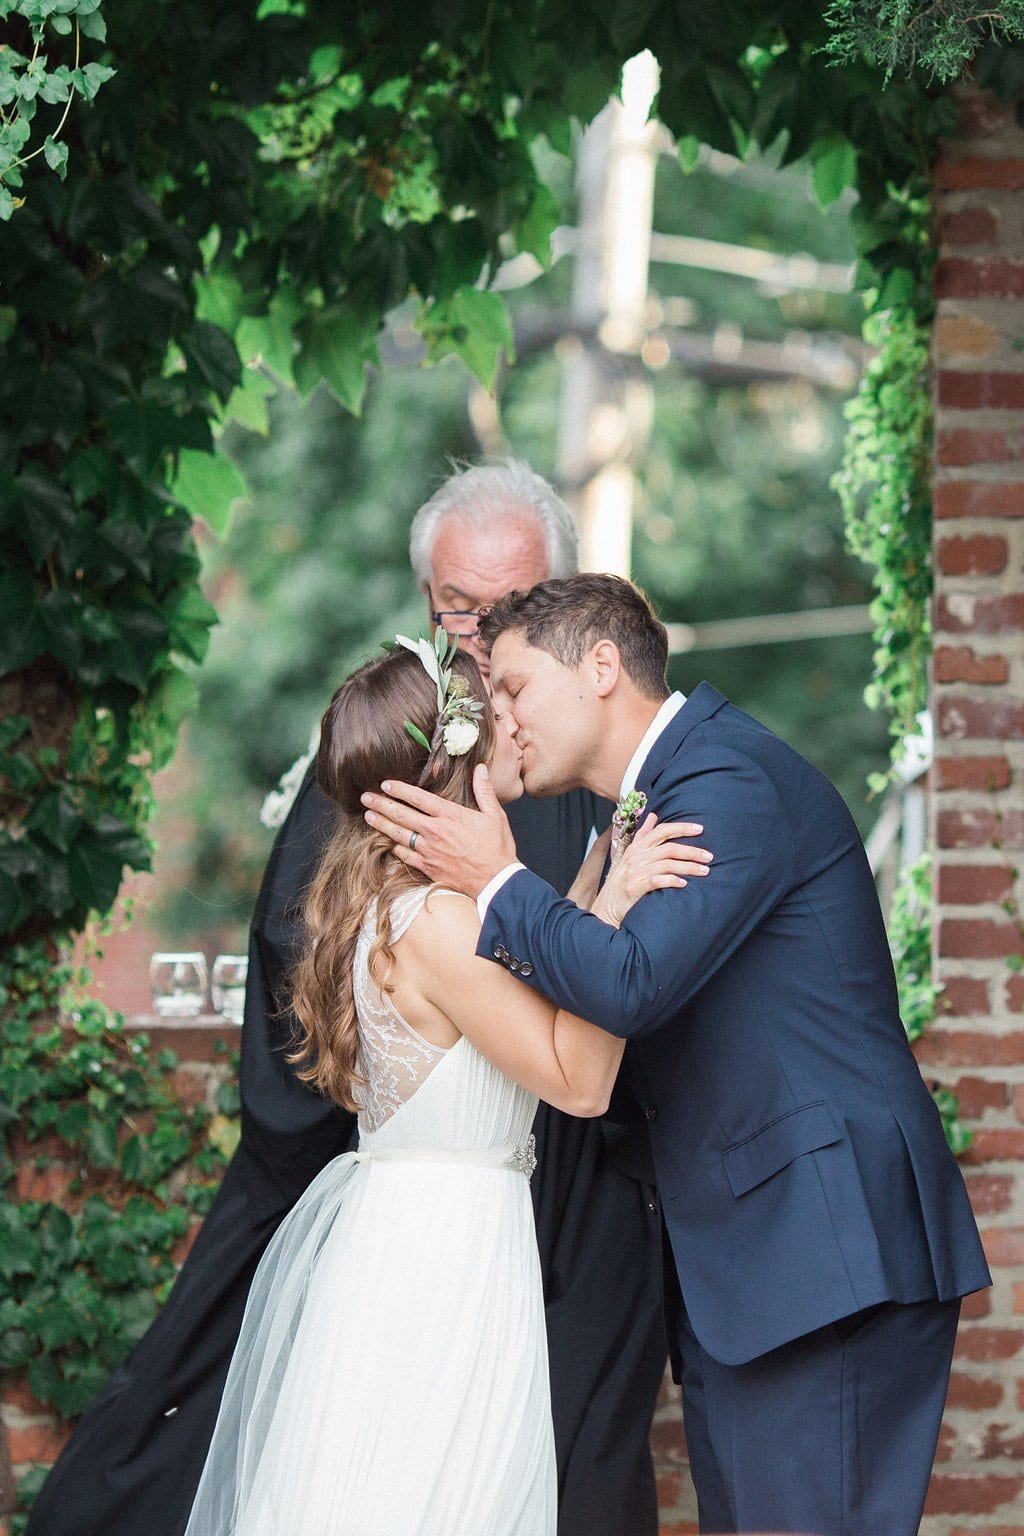 Bride and groom have their first kiss as husband and wife during wedding ceremony